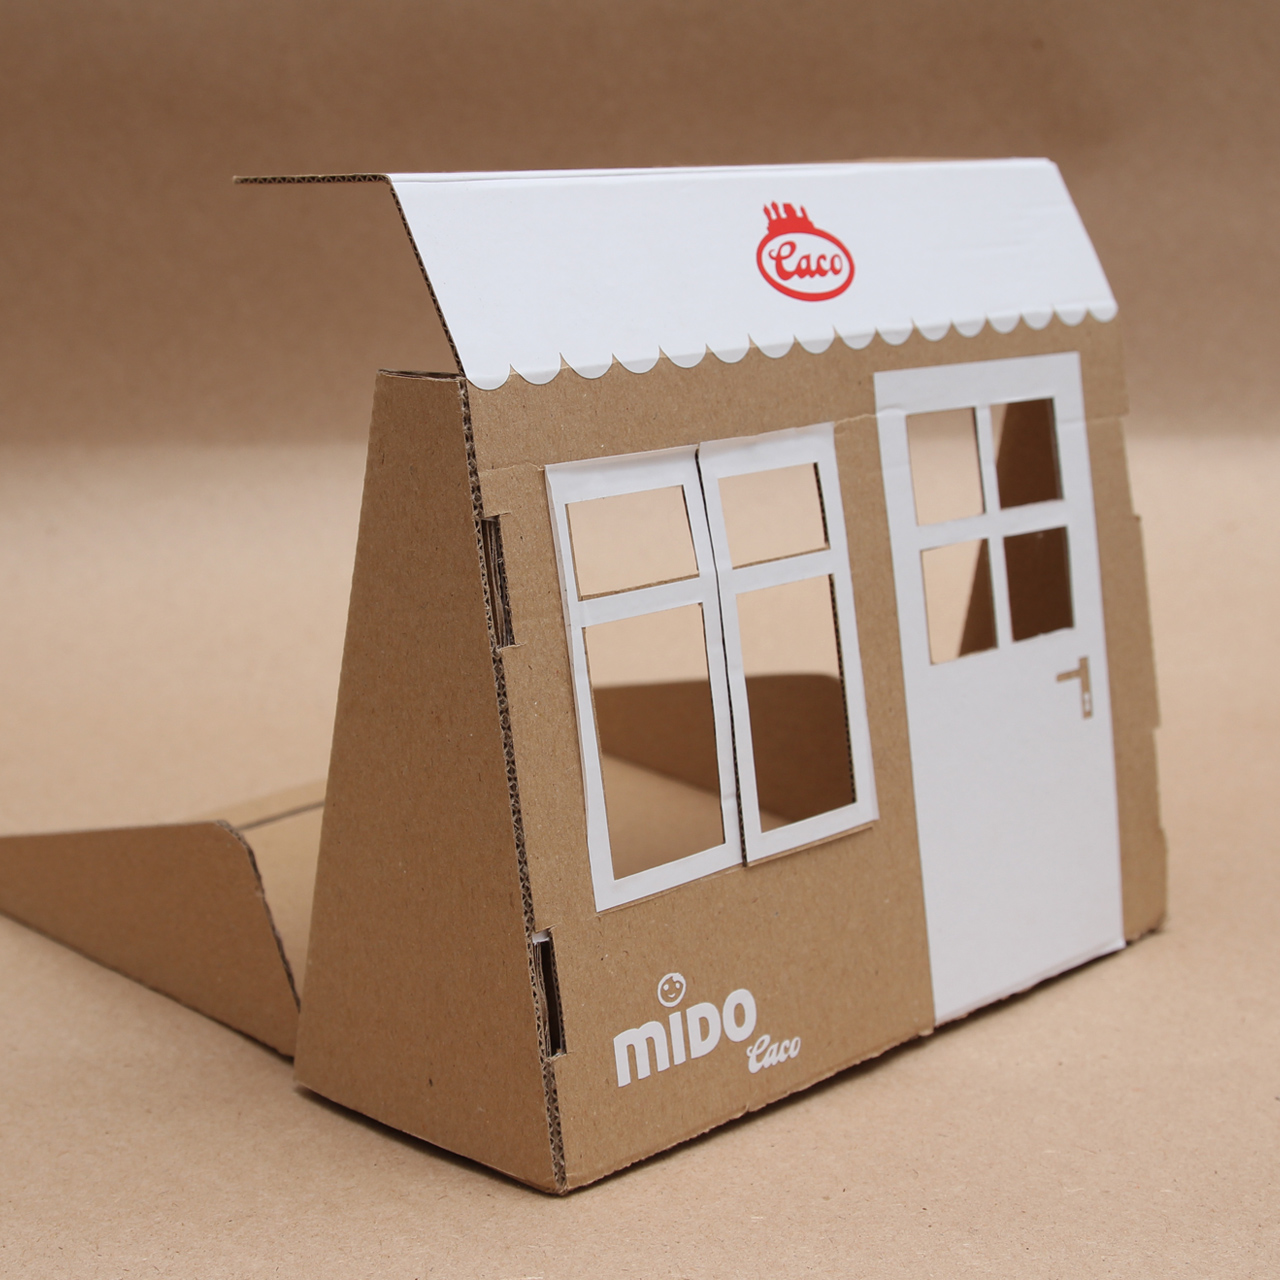 njustudio_Midopuppe_caco_packaging